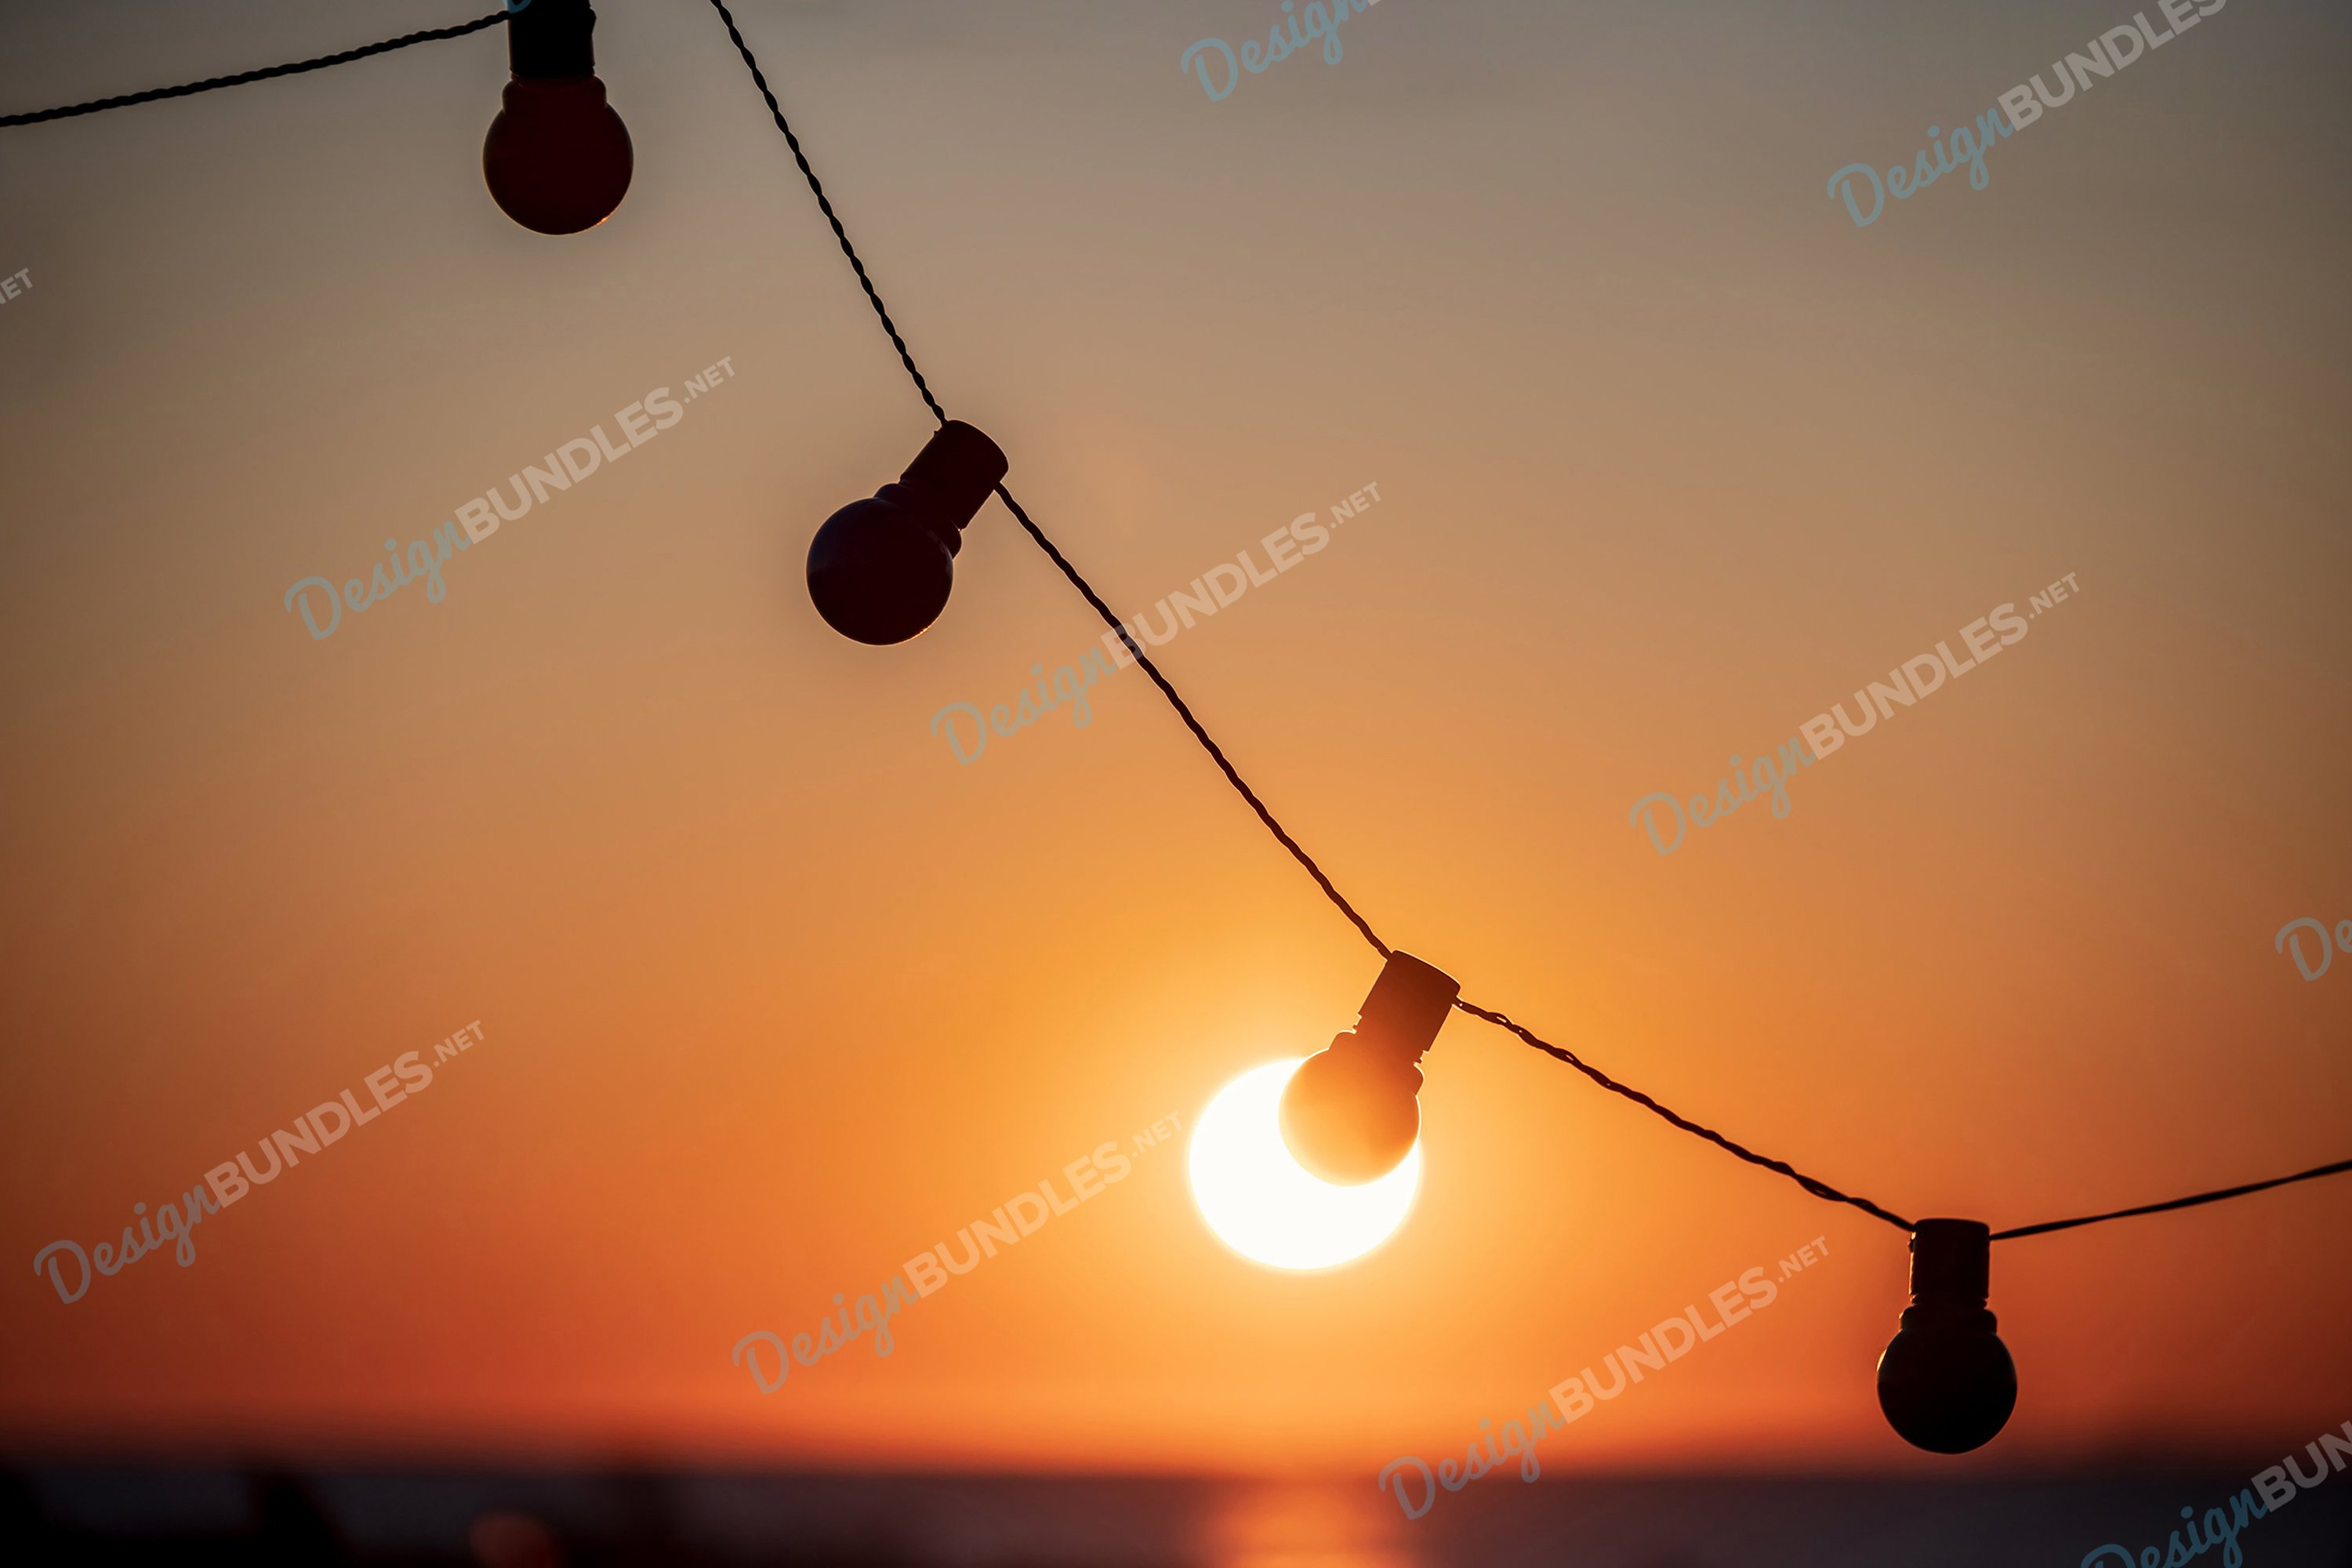 Stock Photo - Silhouette of incandescent lamps at sunset example image 1